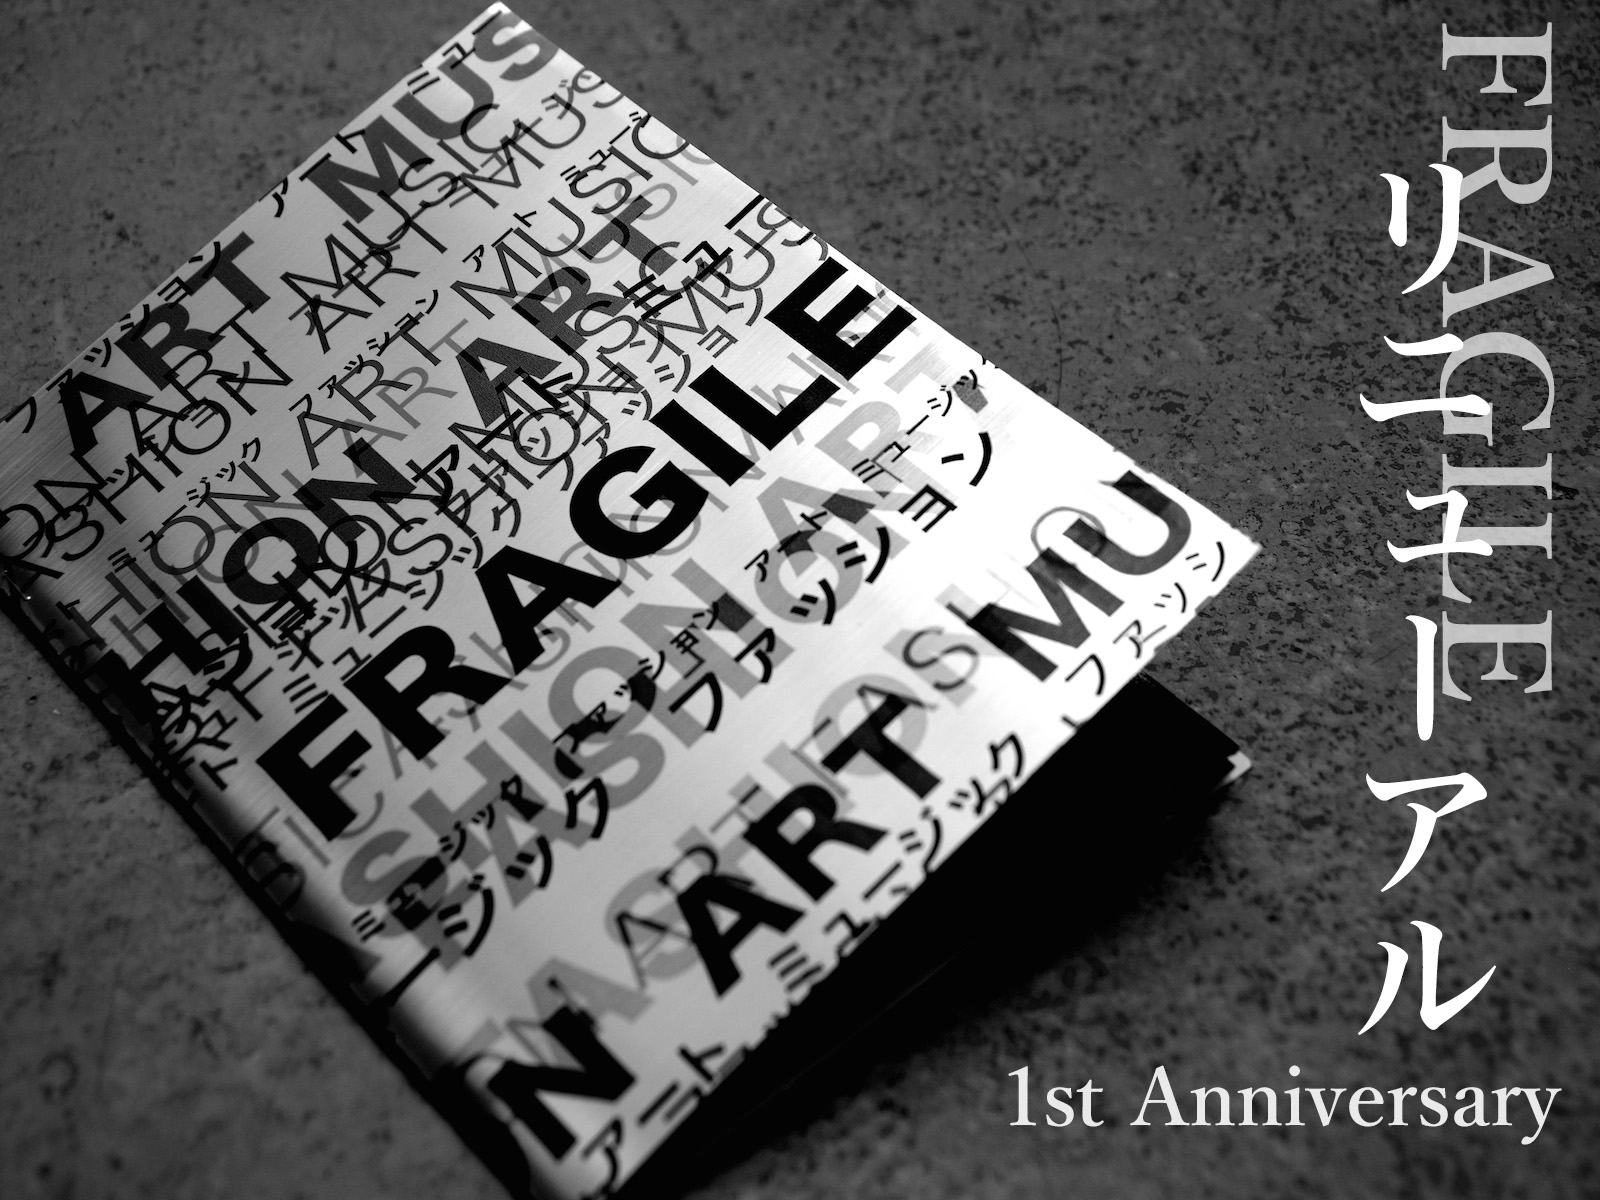 FRAGILE RENEWAL 1st Anniversary